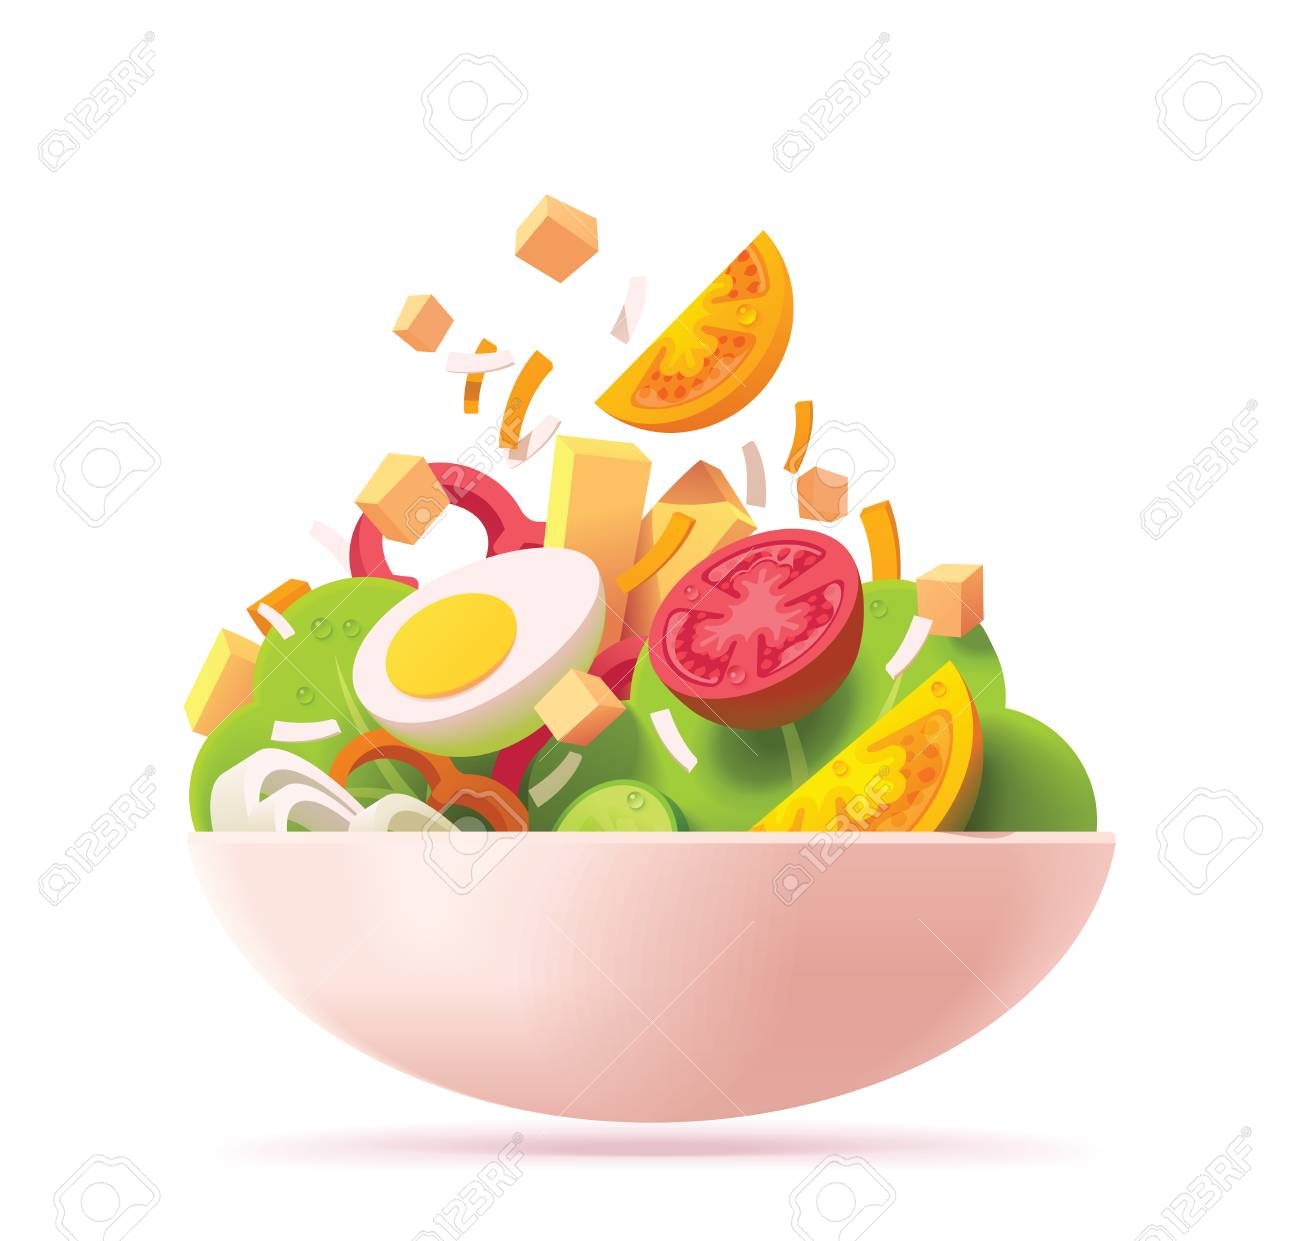 Vector green salad icon. Includes red and orange tomato, lettuce, cheese, egg, red bell pepper, croutons and onion - 113575054